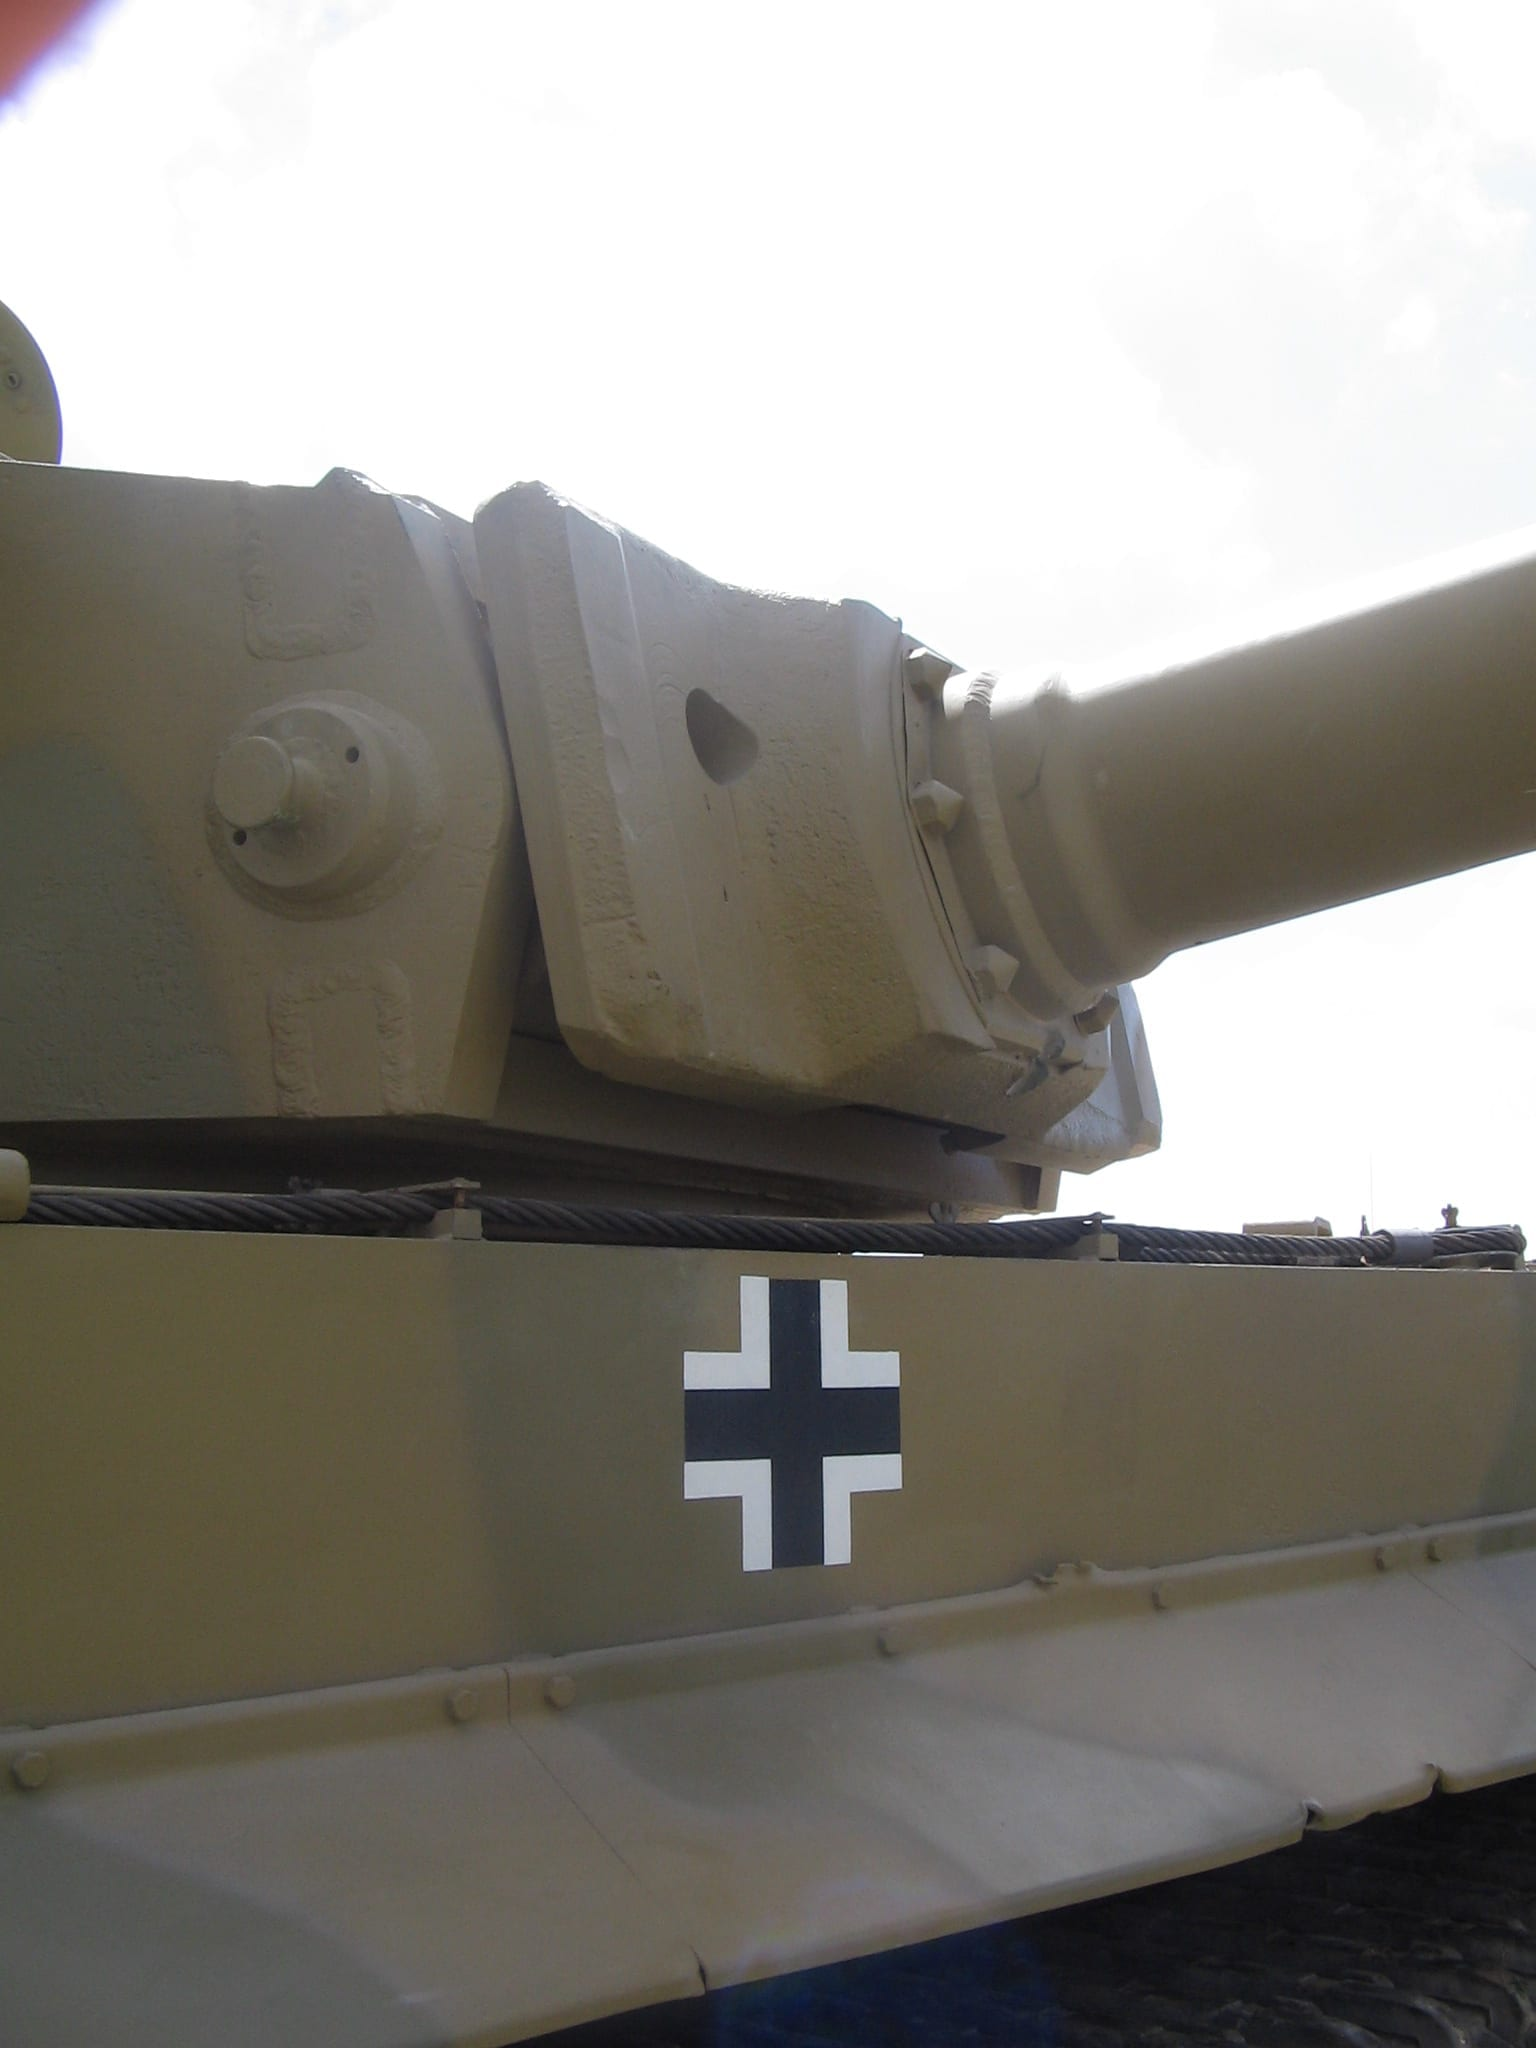 Medium Sized German Tank